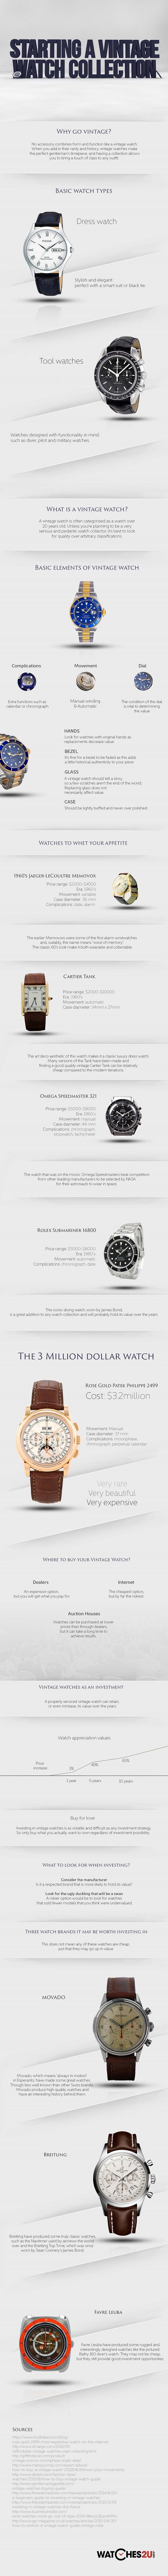 Starting A Vintage Watch Collection Infographic